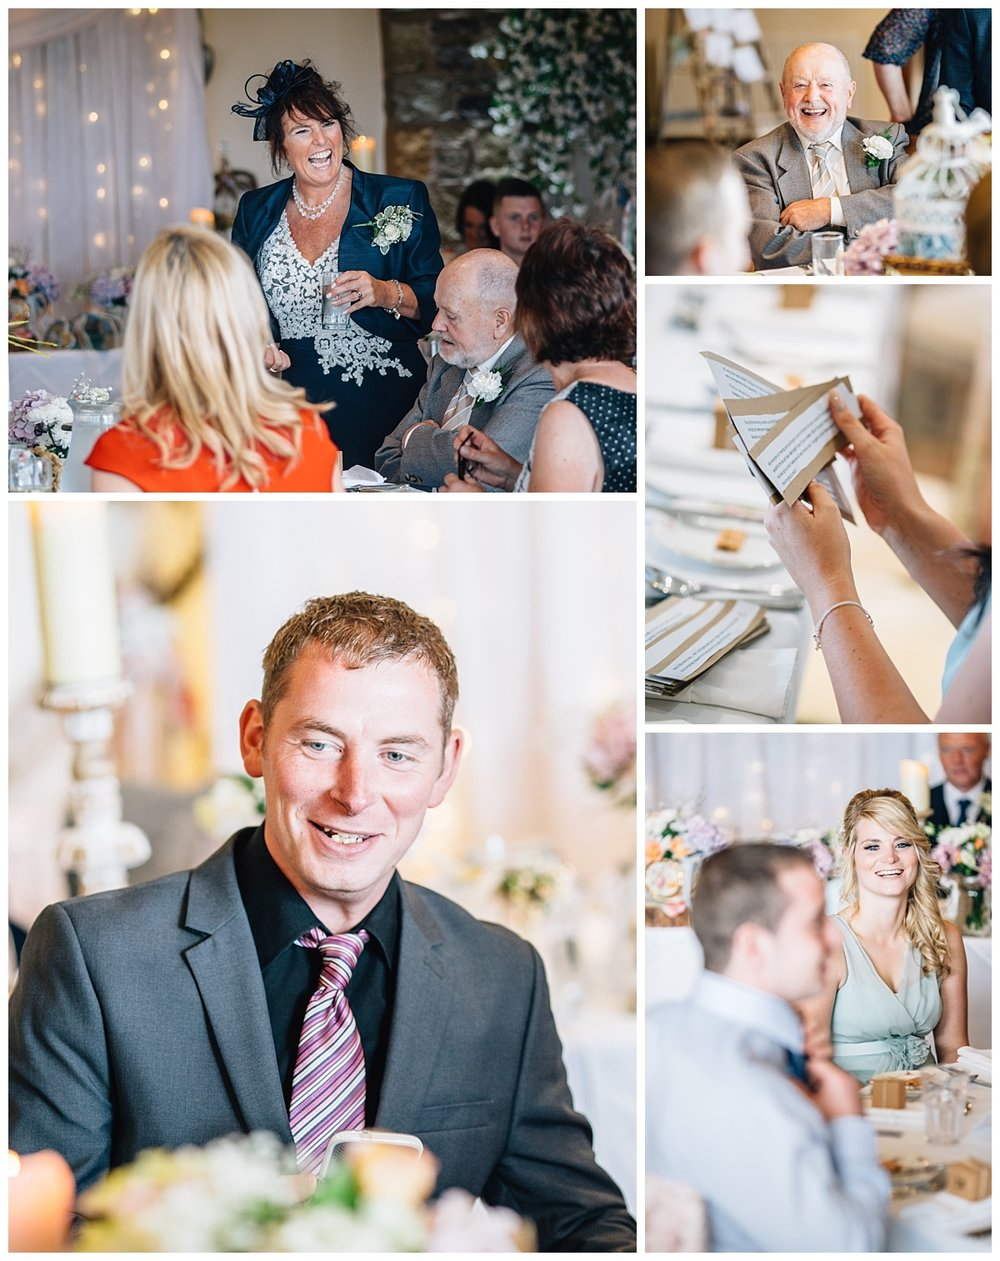 Collage of the wedding guests after the ceremony at Beeston Manor